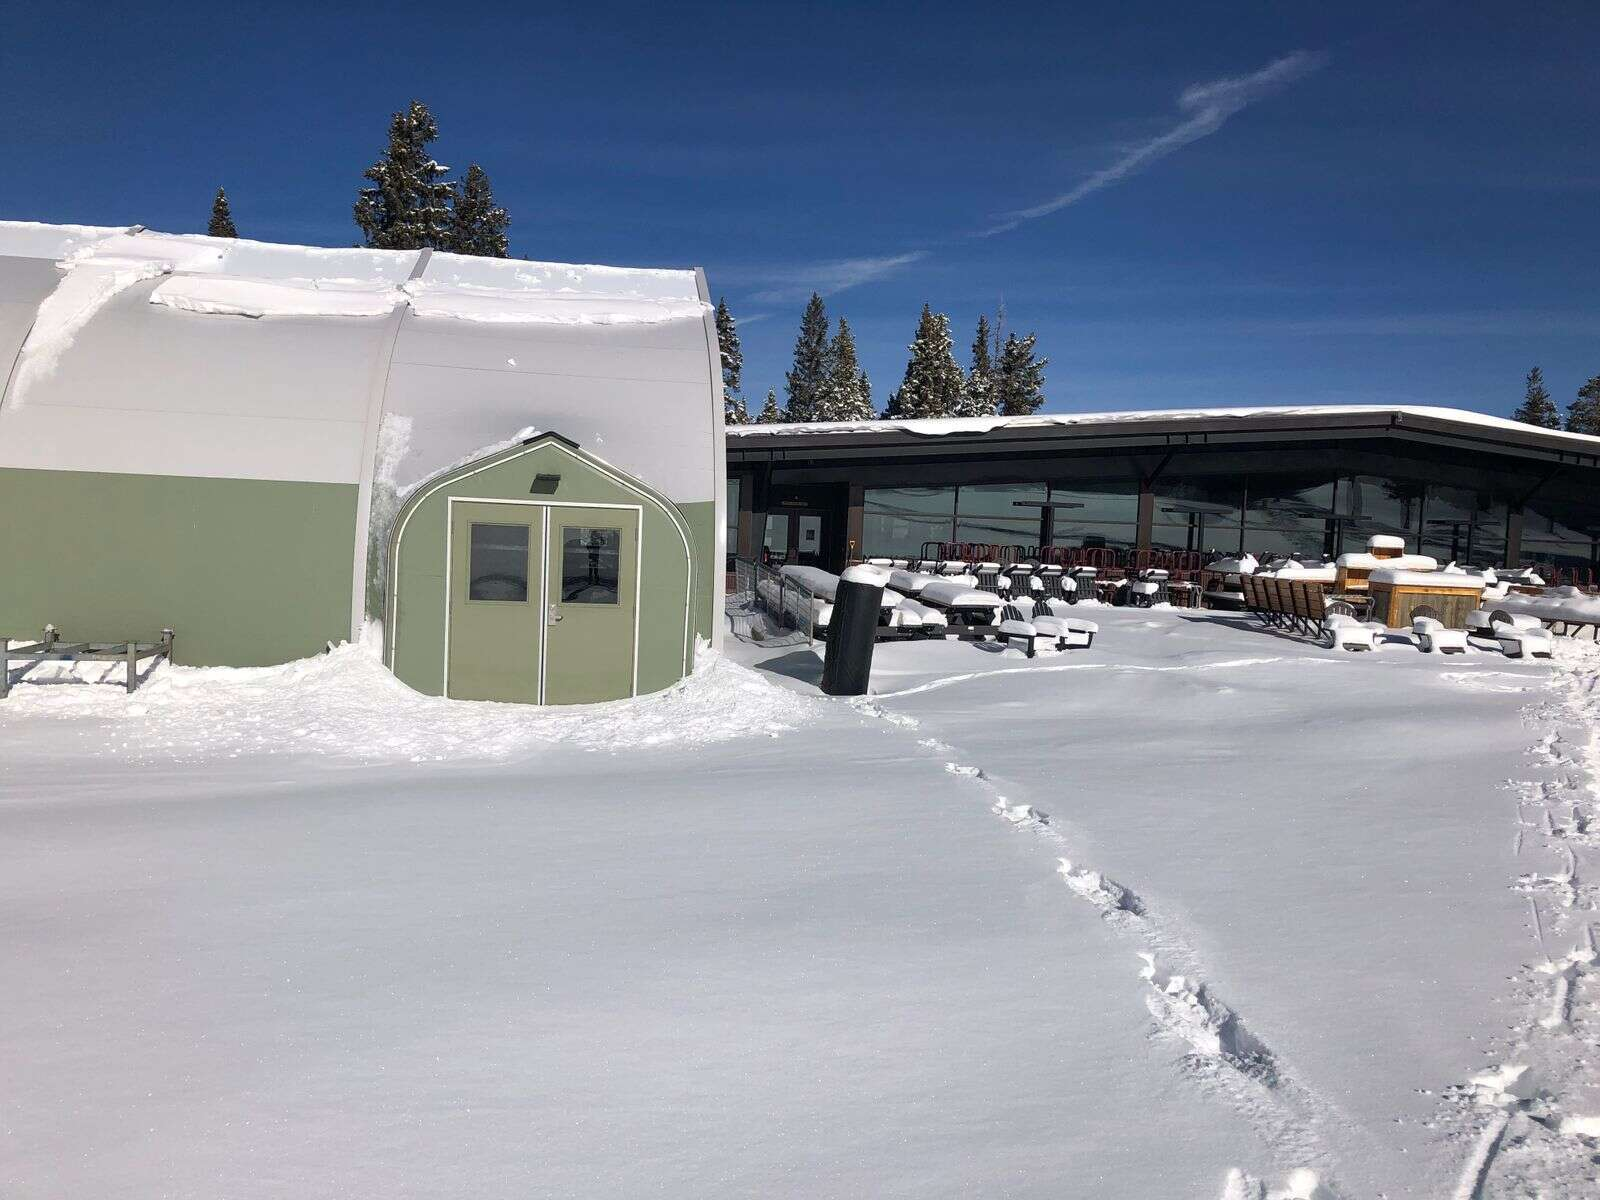 Aspen Skiing Co. made preparations for expanded seating at the Merry-Go-Round restaurant at Aspen Highlands with this tent for outside dining. |Scott Condon/The Aspen Times